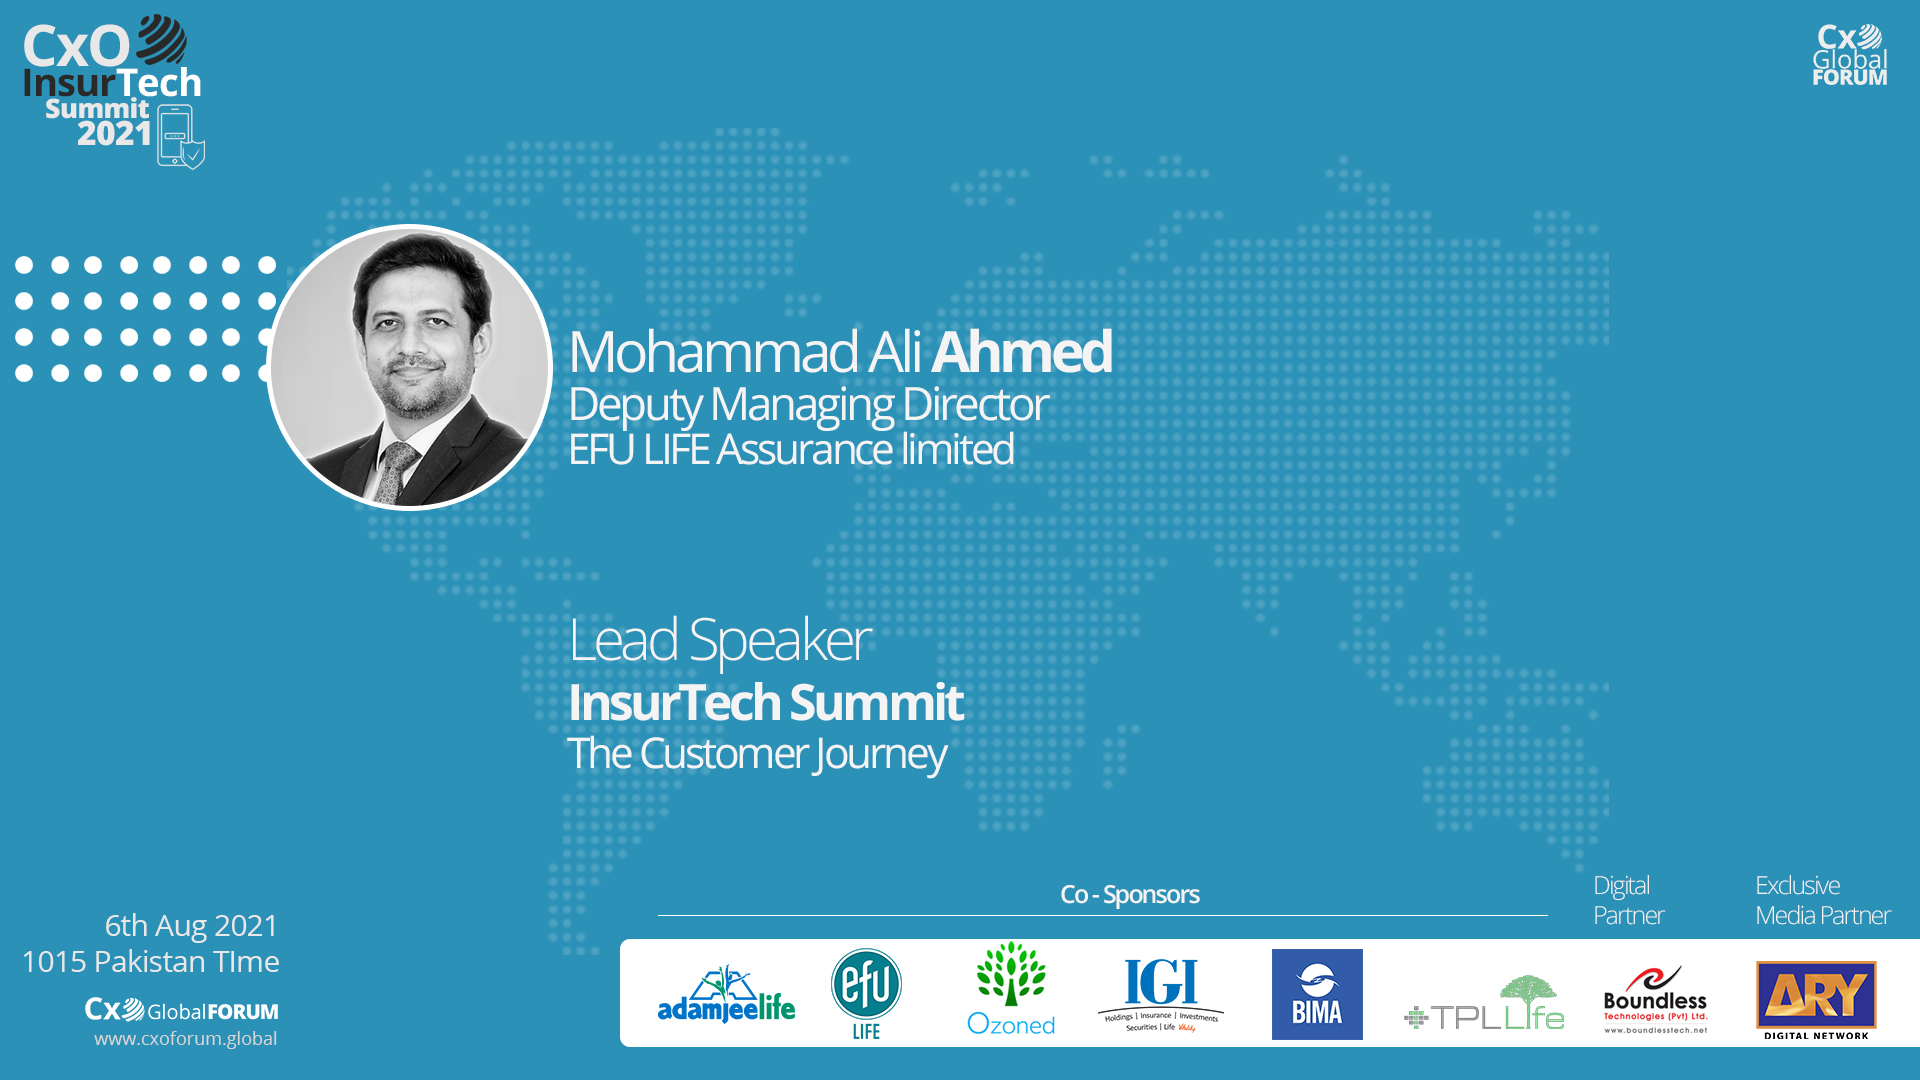 Session by Mohammed Ali Ahmed